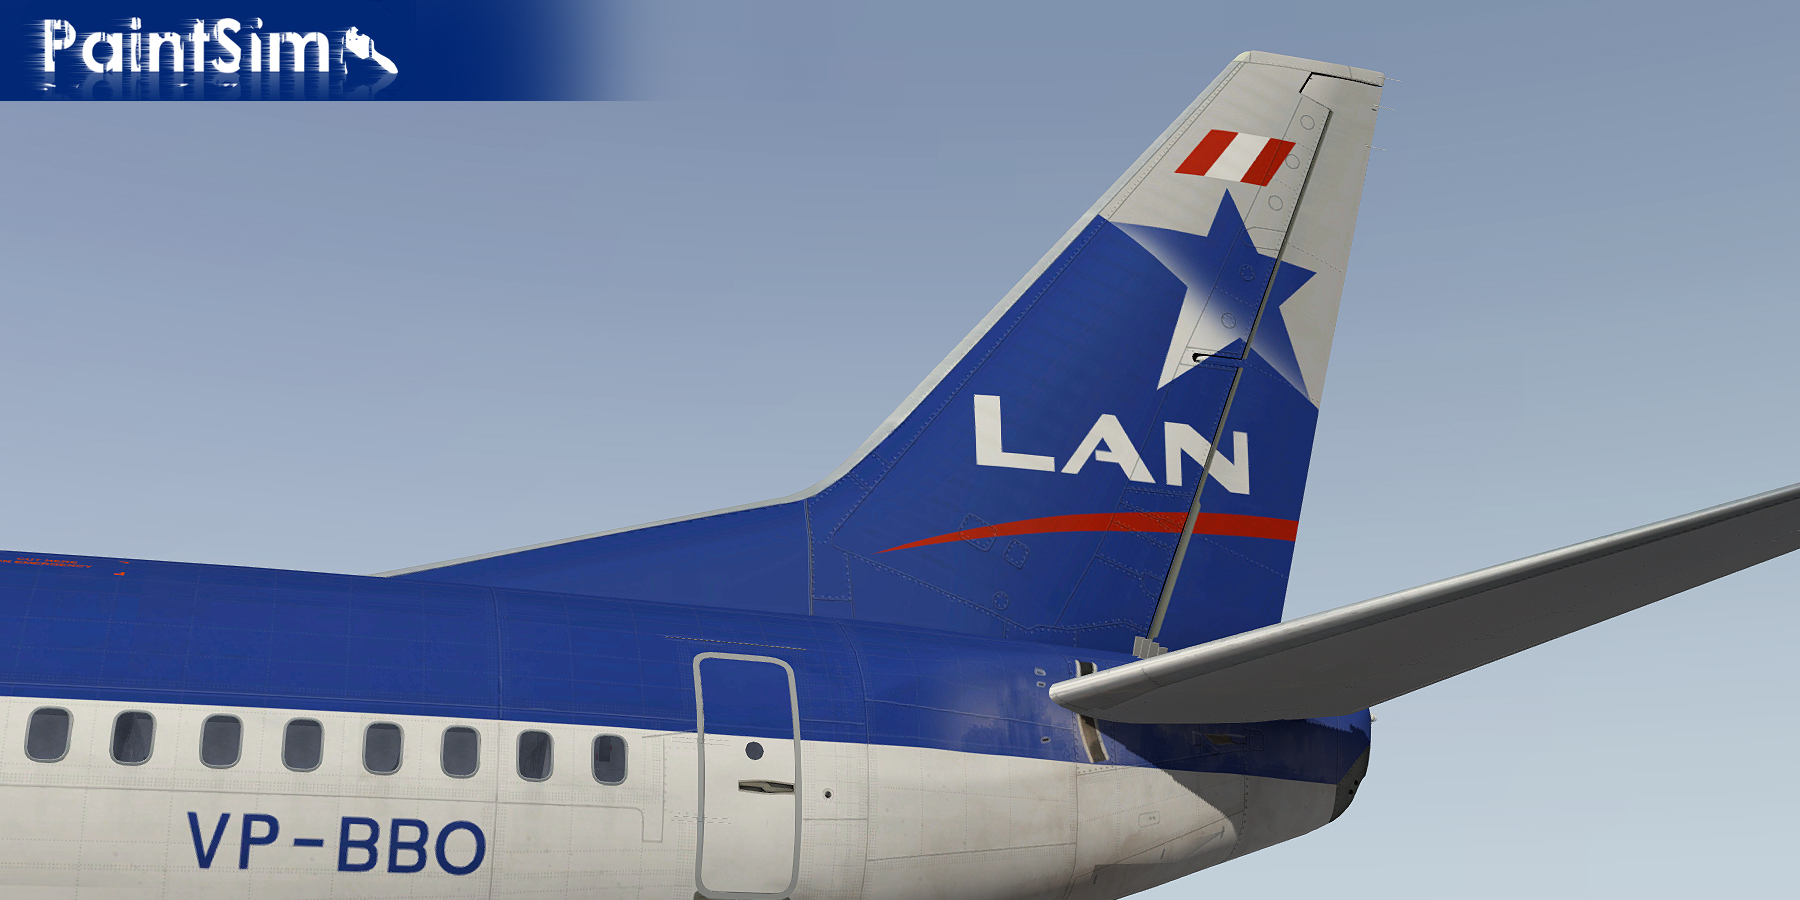 PAINTSIM - HD REPAINTS FOR IXEG BOEING 737-300 CLASSIC X-PLANE 10